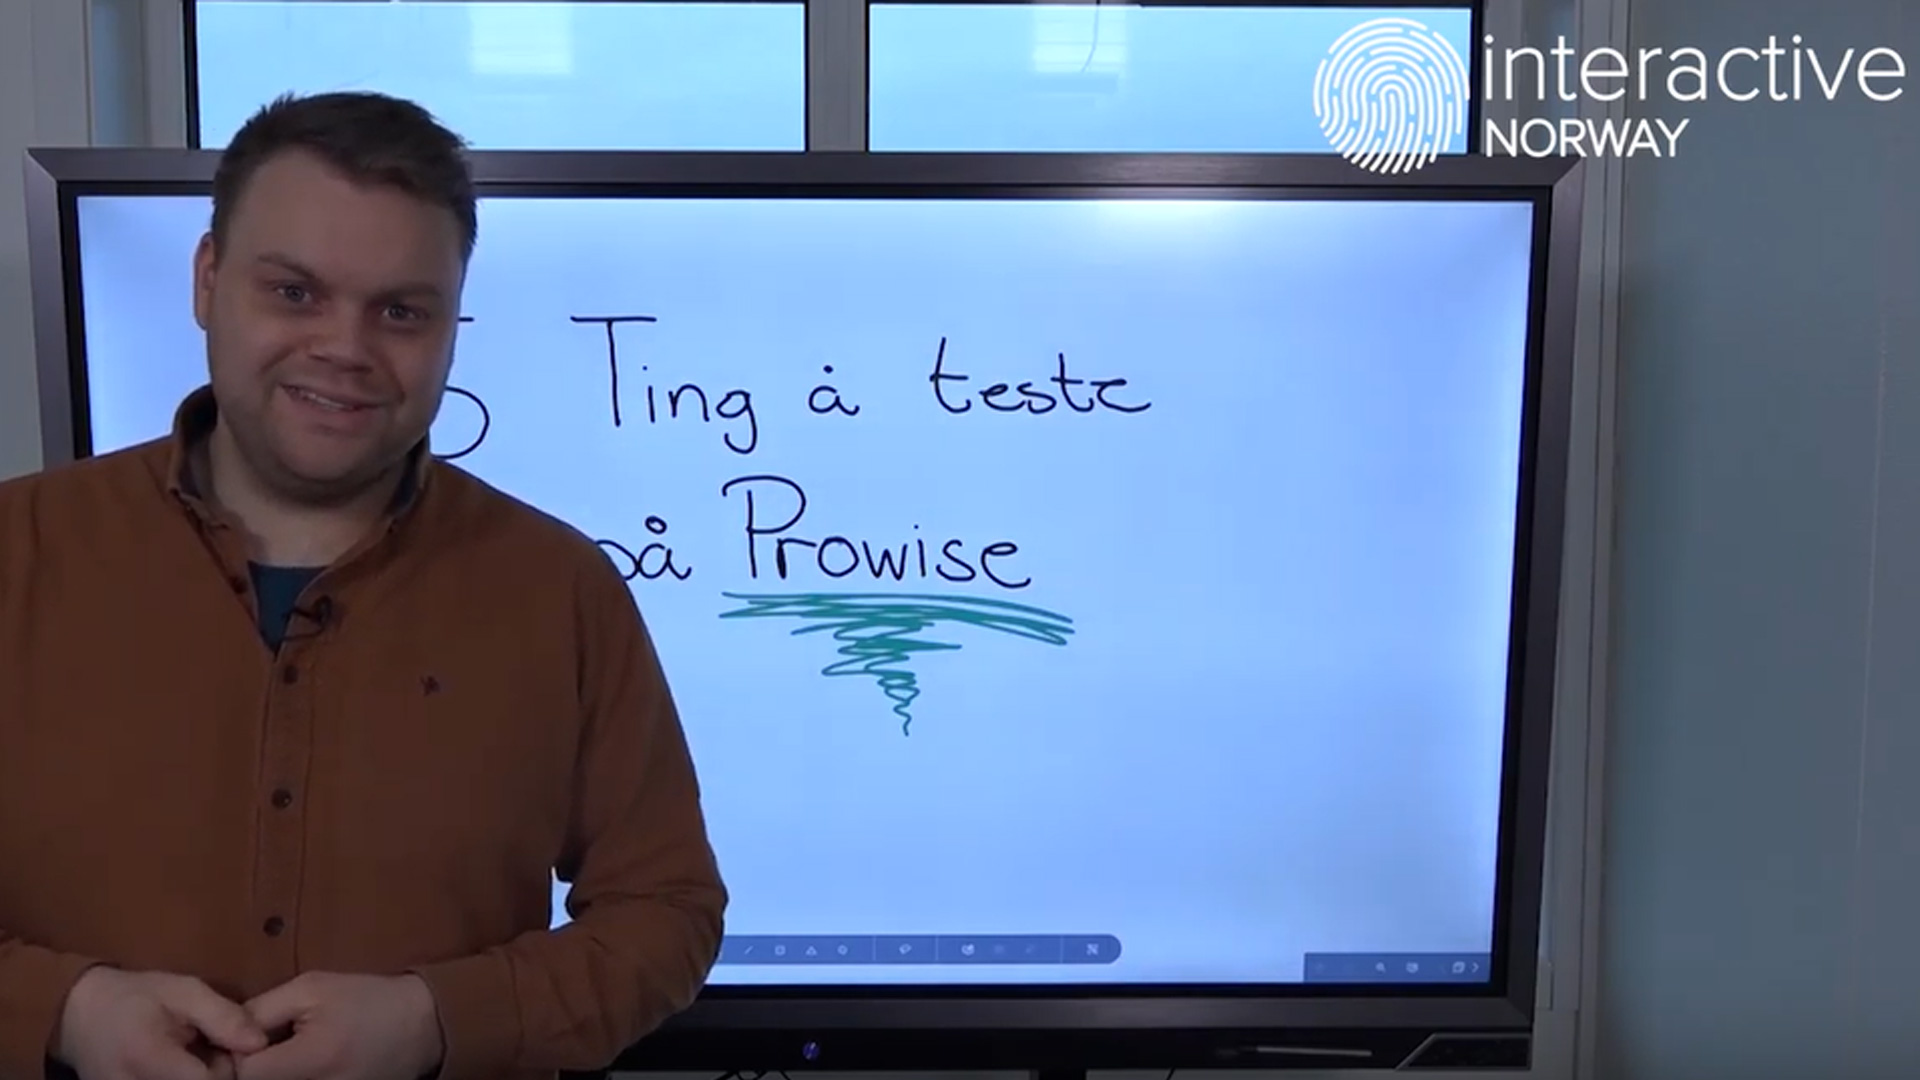 Prowise-touchscreen